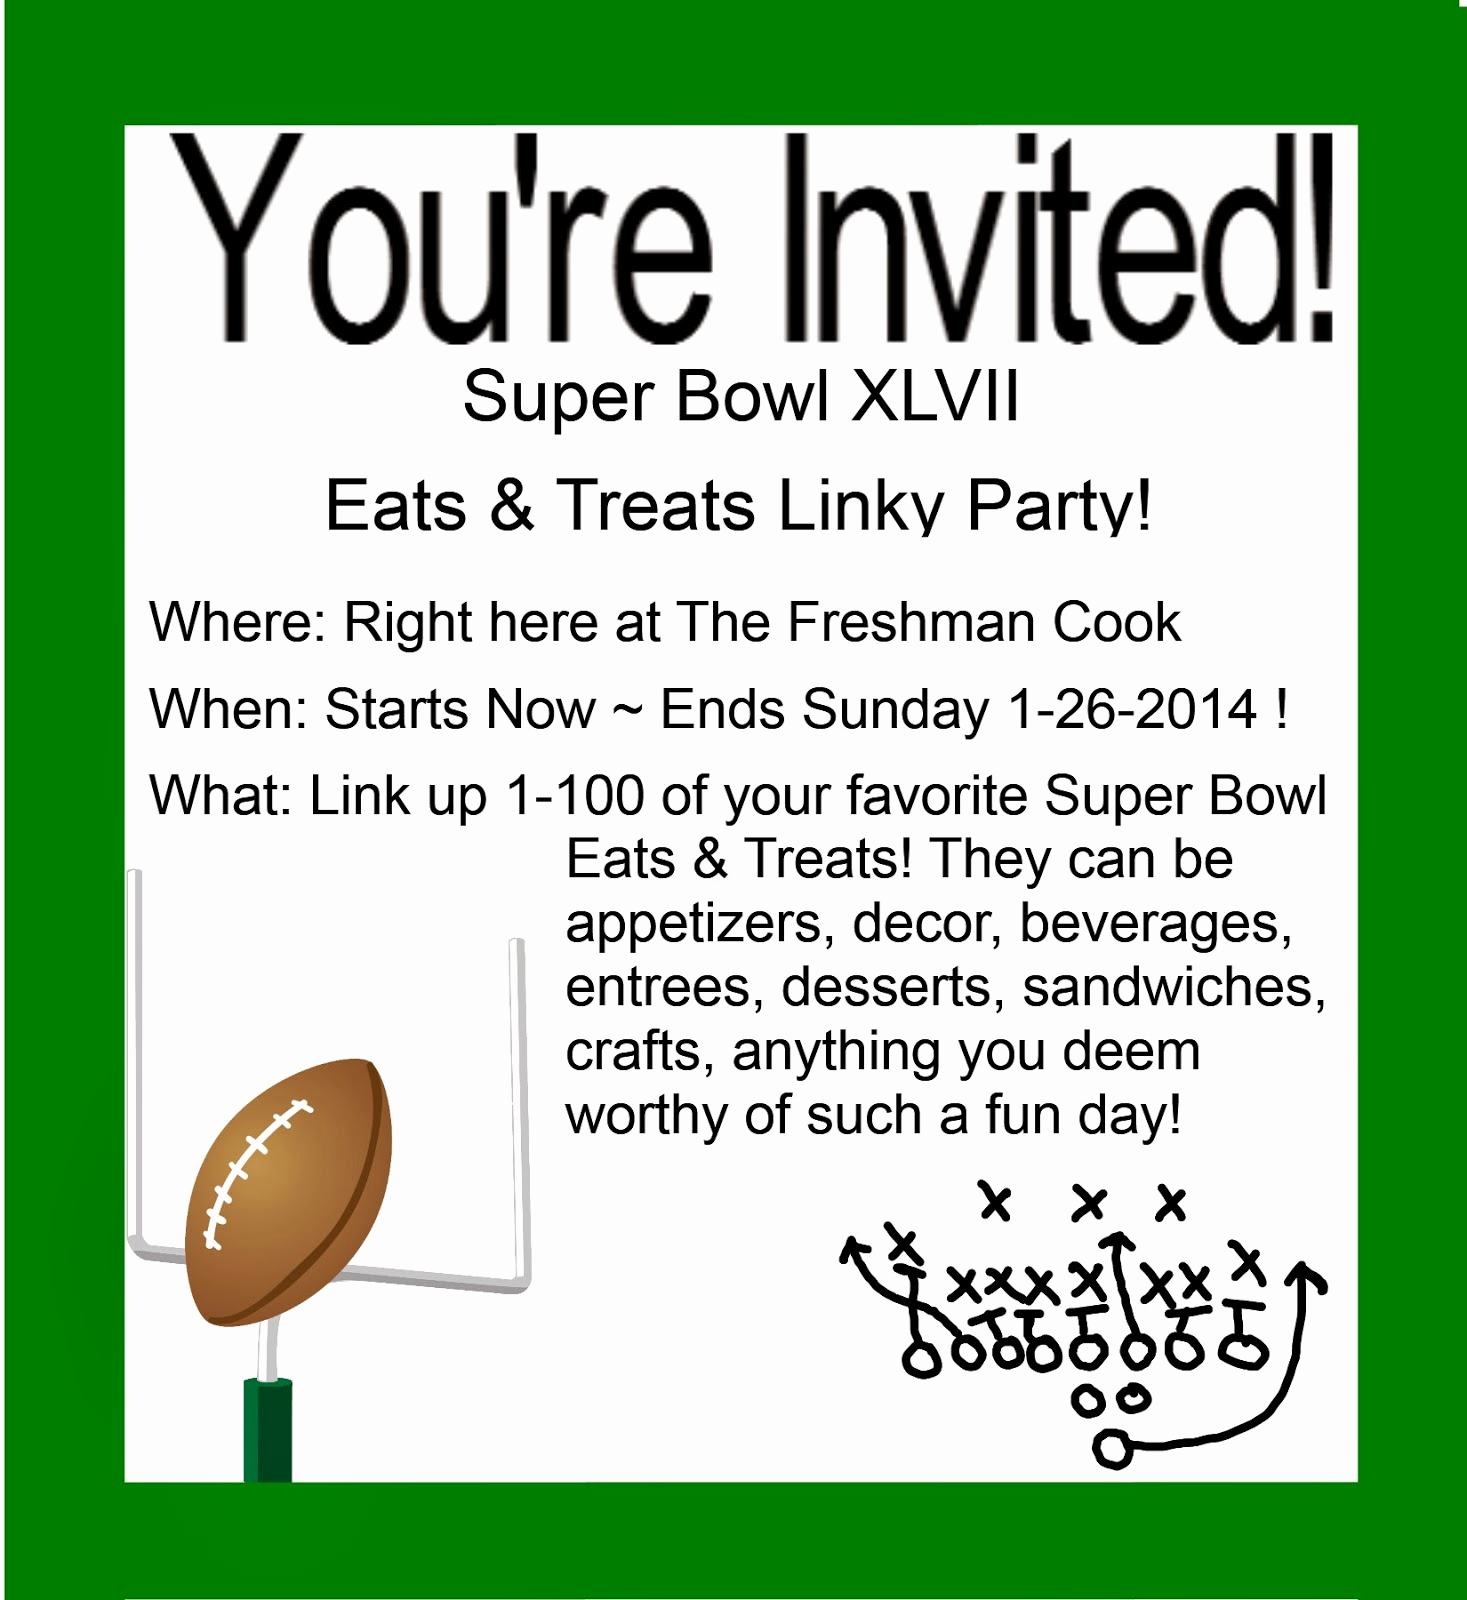 Super Bowl Party Invitation Template New the Freshman Cook Super Bowl Linky Party